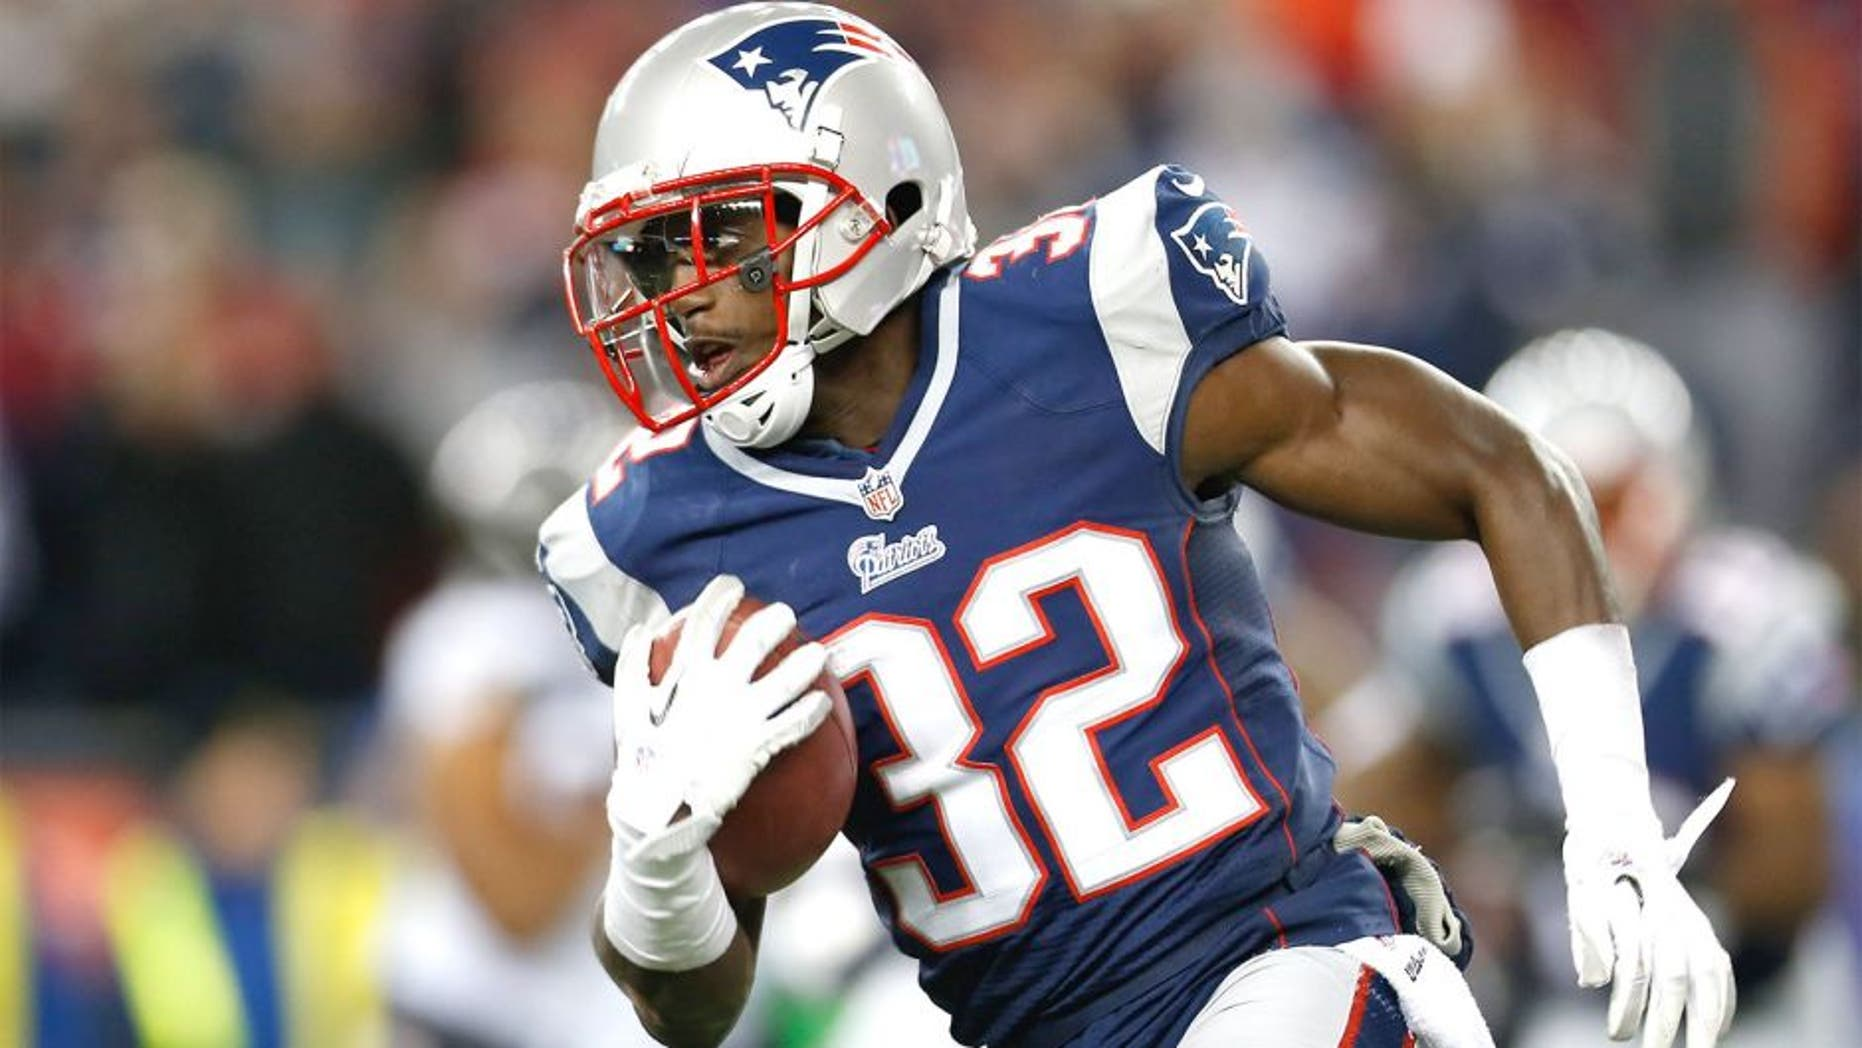 Jan 20, 2013; Foxboro, Massachusetts, USA; New England Patriots cornerback Devin McCourty (32) carries the ball during the fourth quarter against the Baltimore Ravens at Gillette Stadium. Mandatory Credit: Greg M. Cooper-USA TODAY Sports